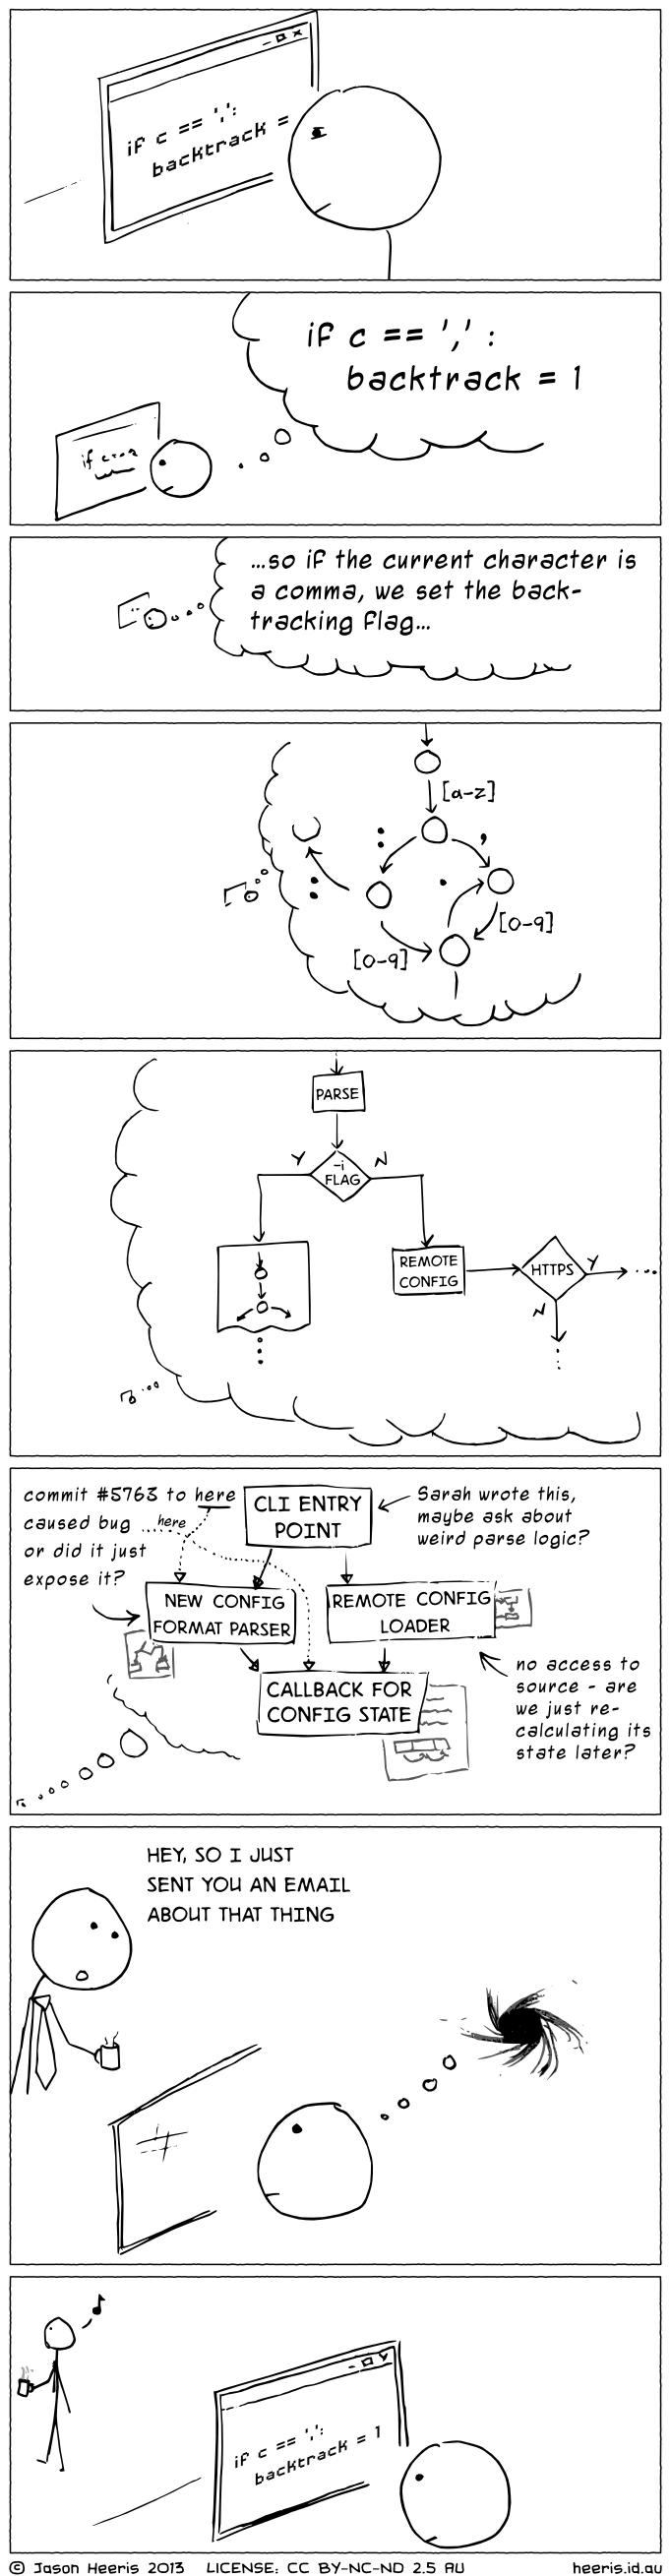 Developer's Flow